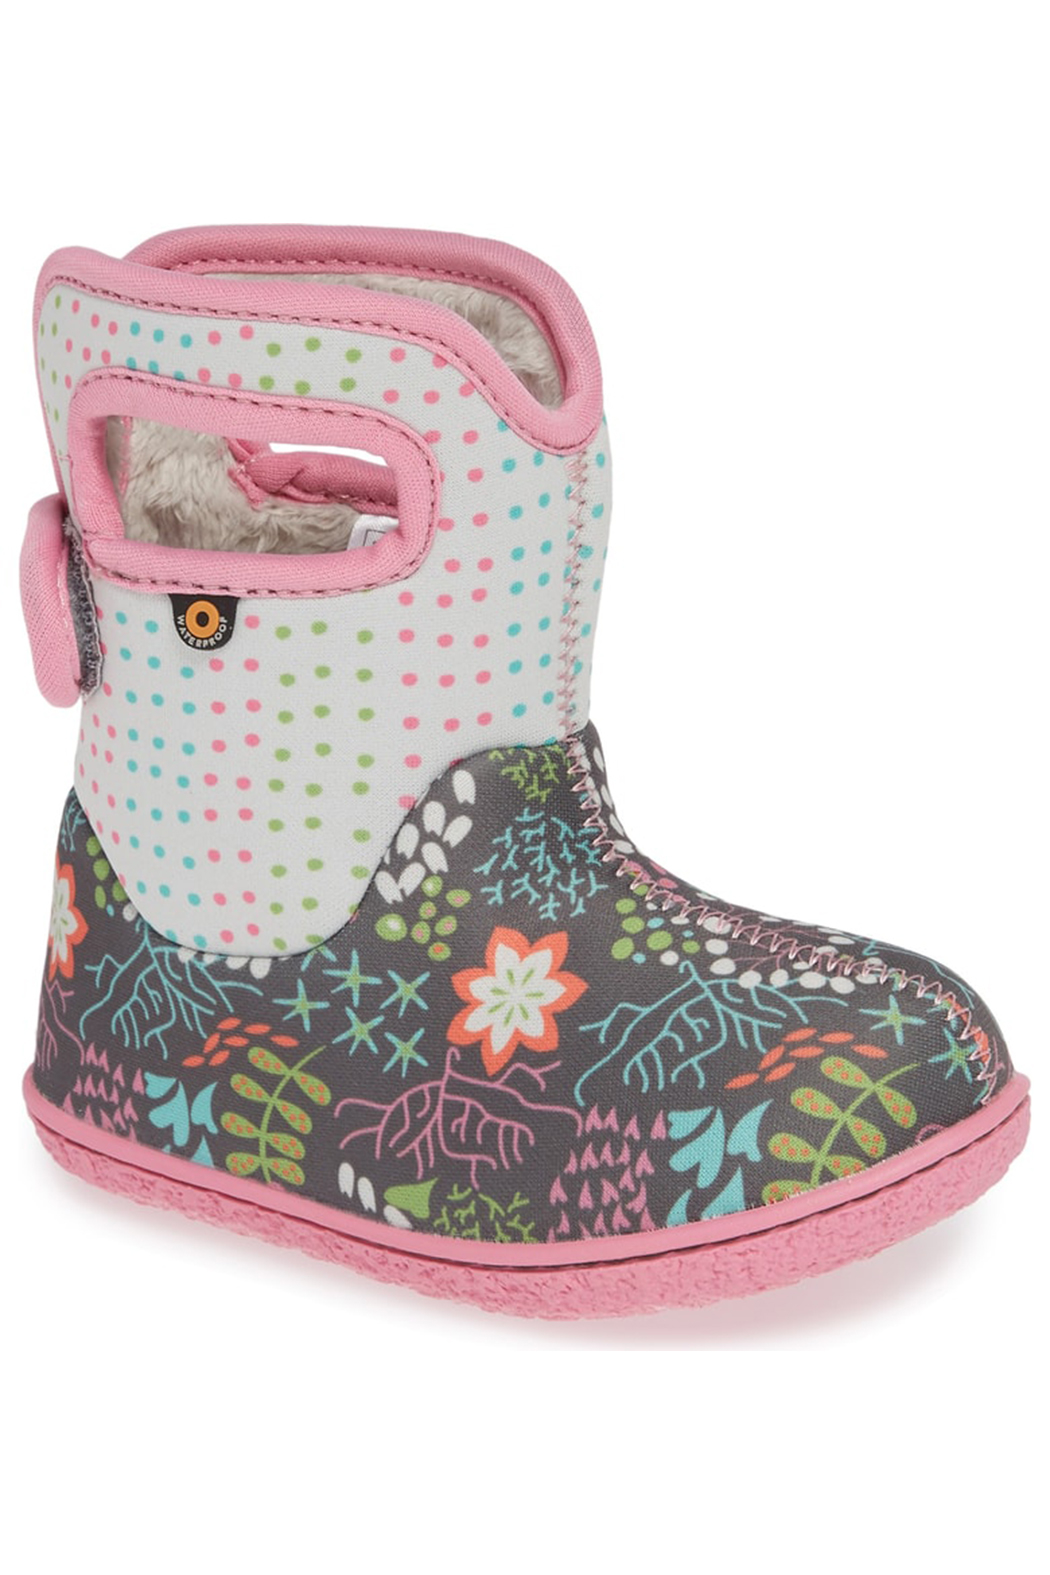 BOGS Baby Bogs Gray Flower Dot Waterproof Boot - Front Full Image